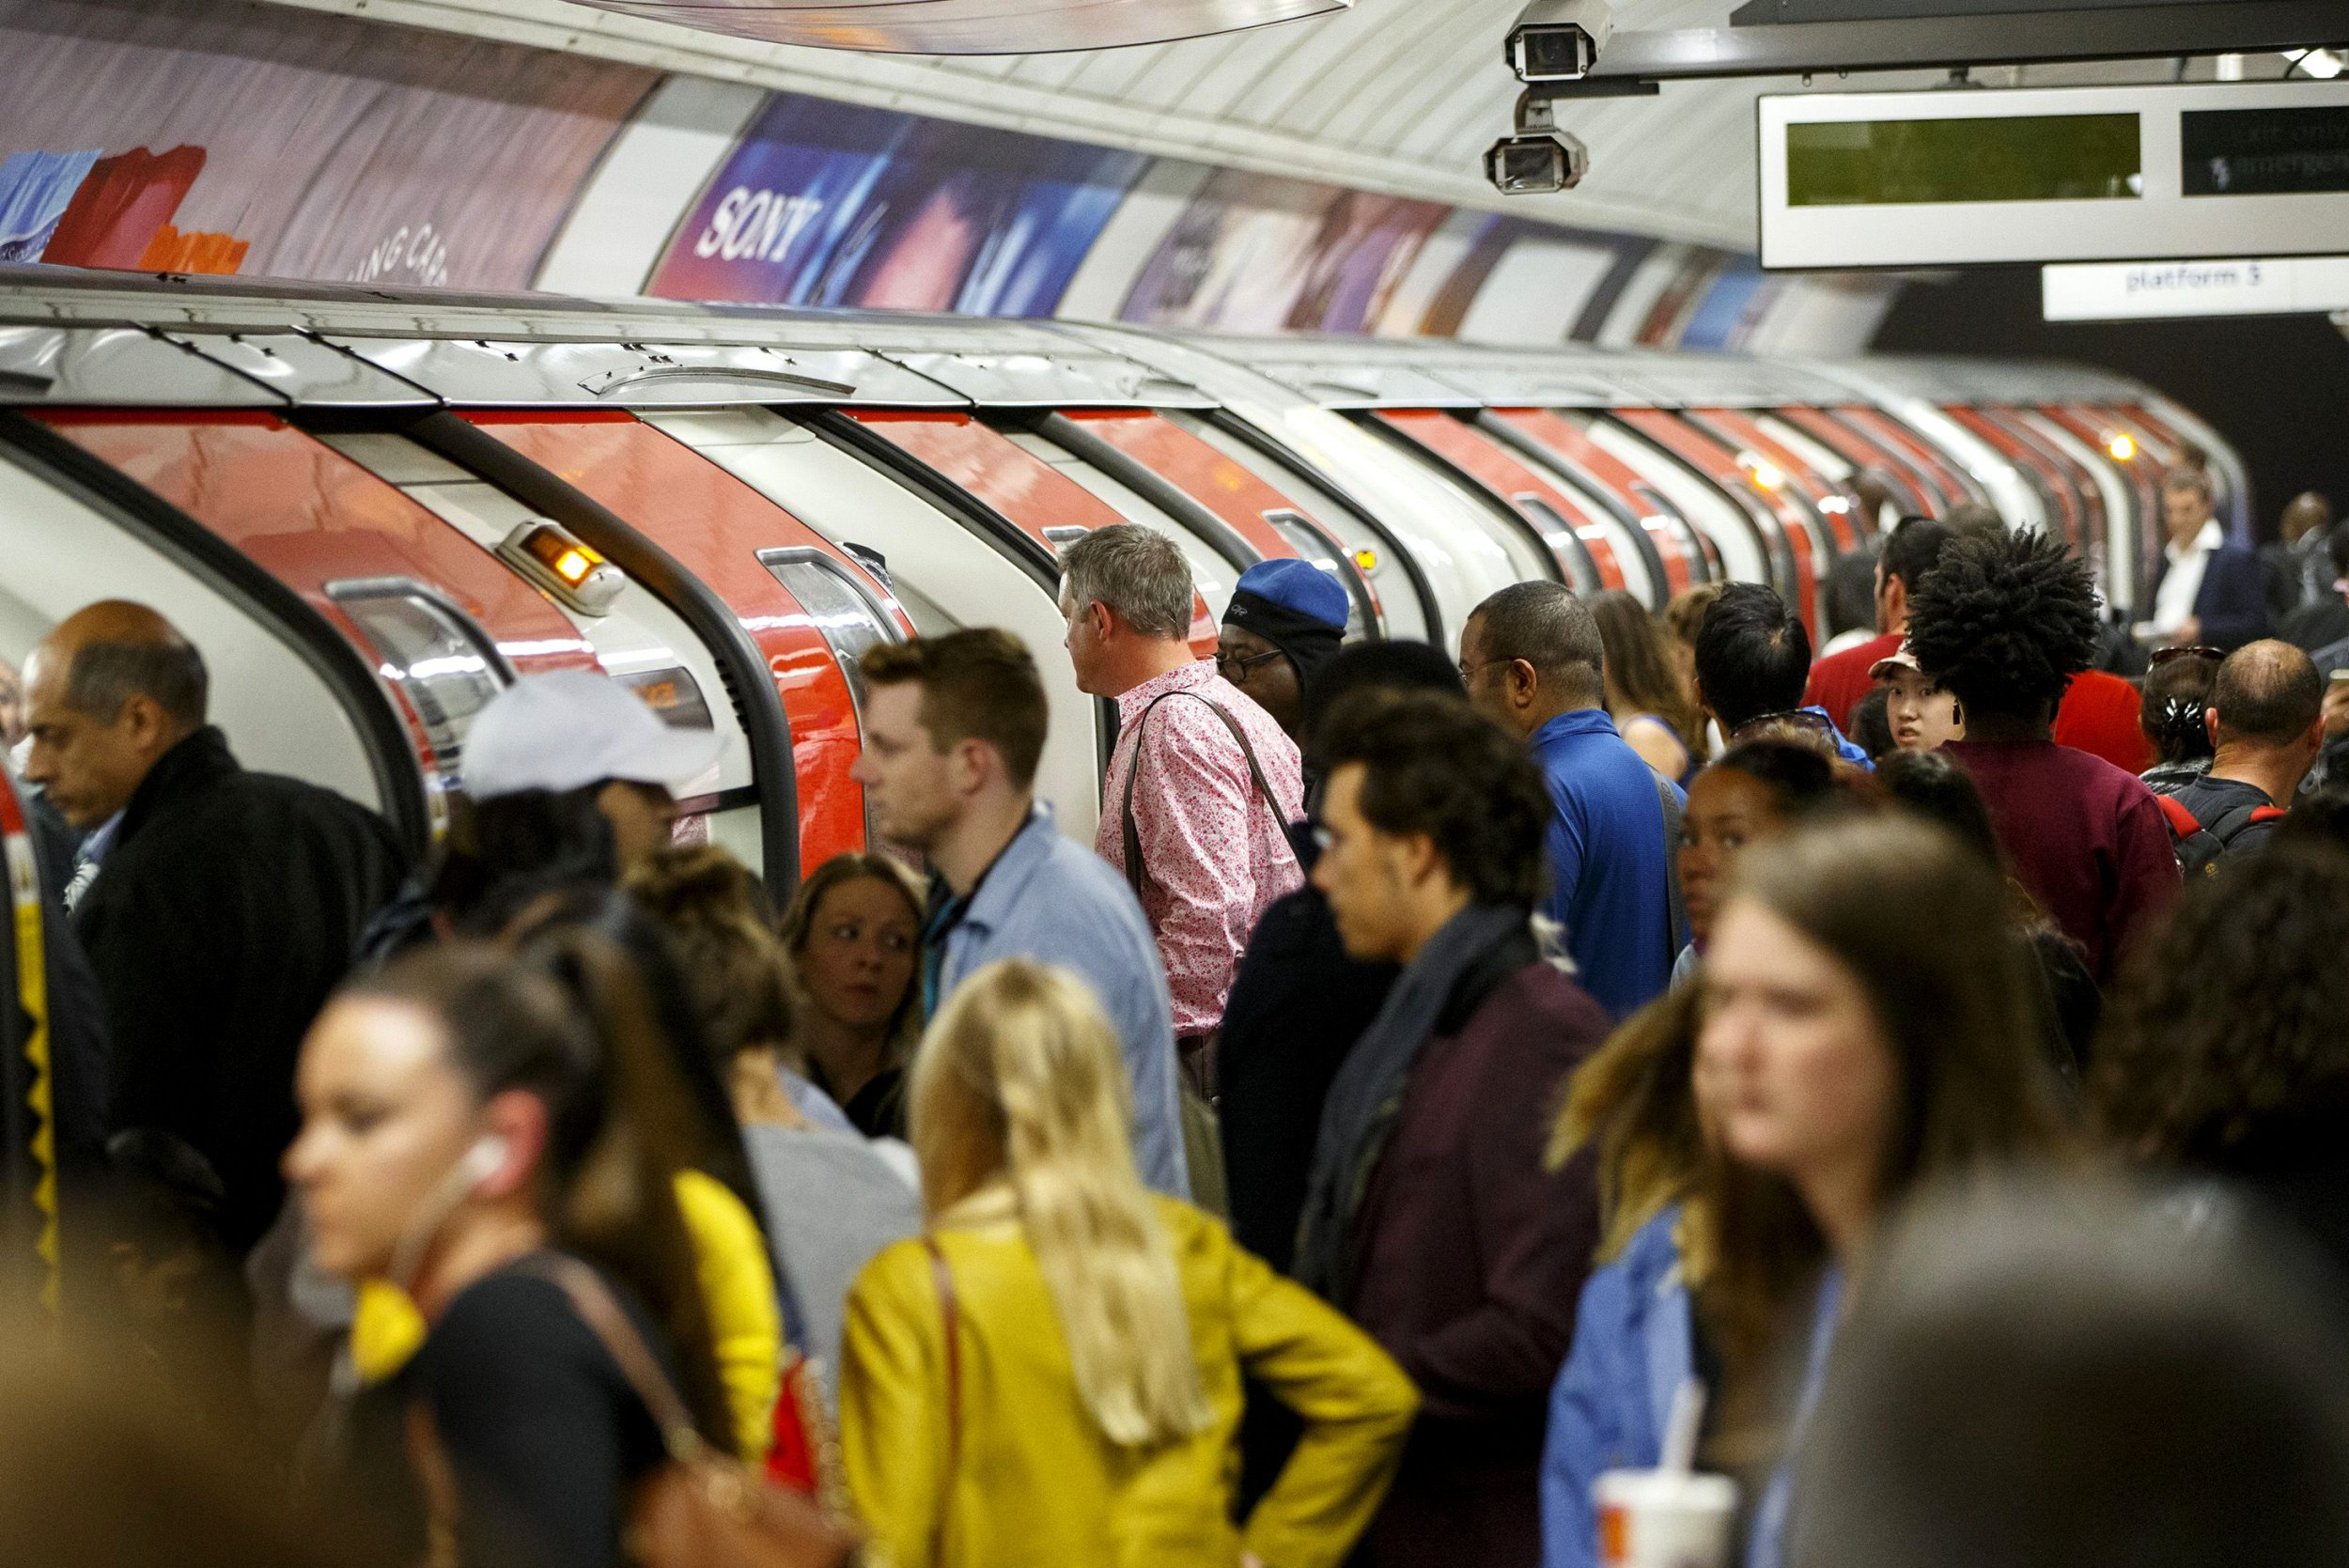 Mandatory Credit: Photo by Tolga Akmen/LNP/REX/Shutterstock (4929961e) Commuters queuing for tube trains at Oxford Circus Tube strike across London Underground network, Britain - 05 Aug 2015 The strike will be a 27-hour stoppage by about 20,000 Tube staff to shut down the entire London Underground network on the second strike over night 'service on parts of Tube, which will be starting on 12 September 2015.